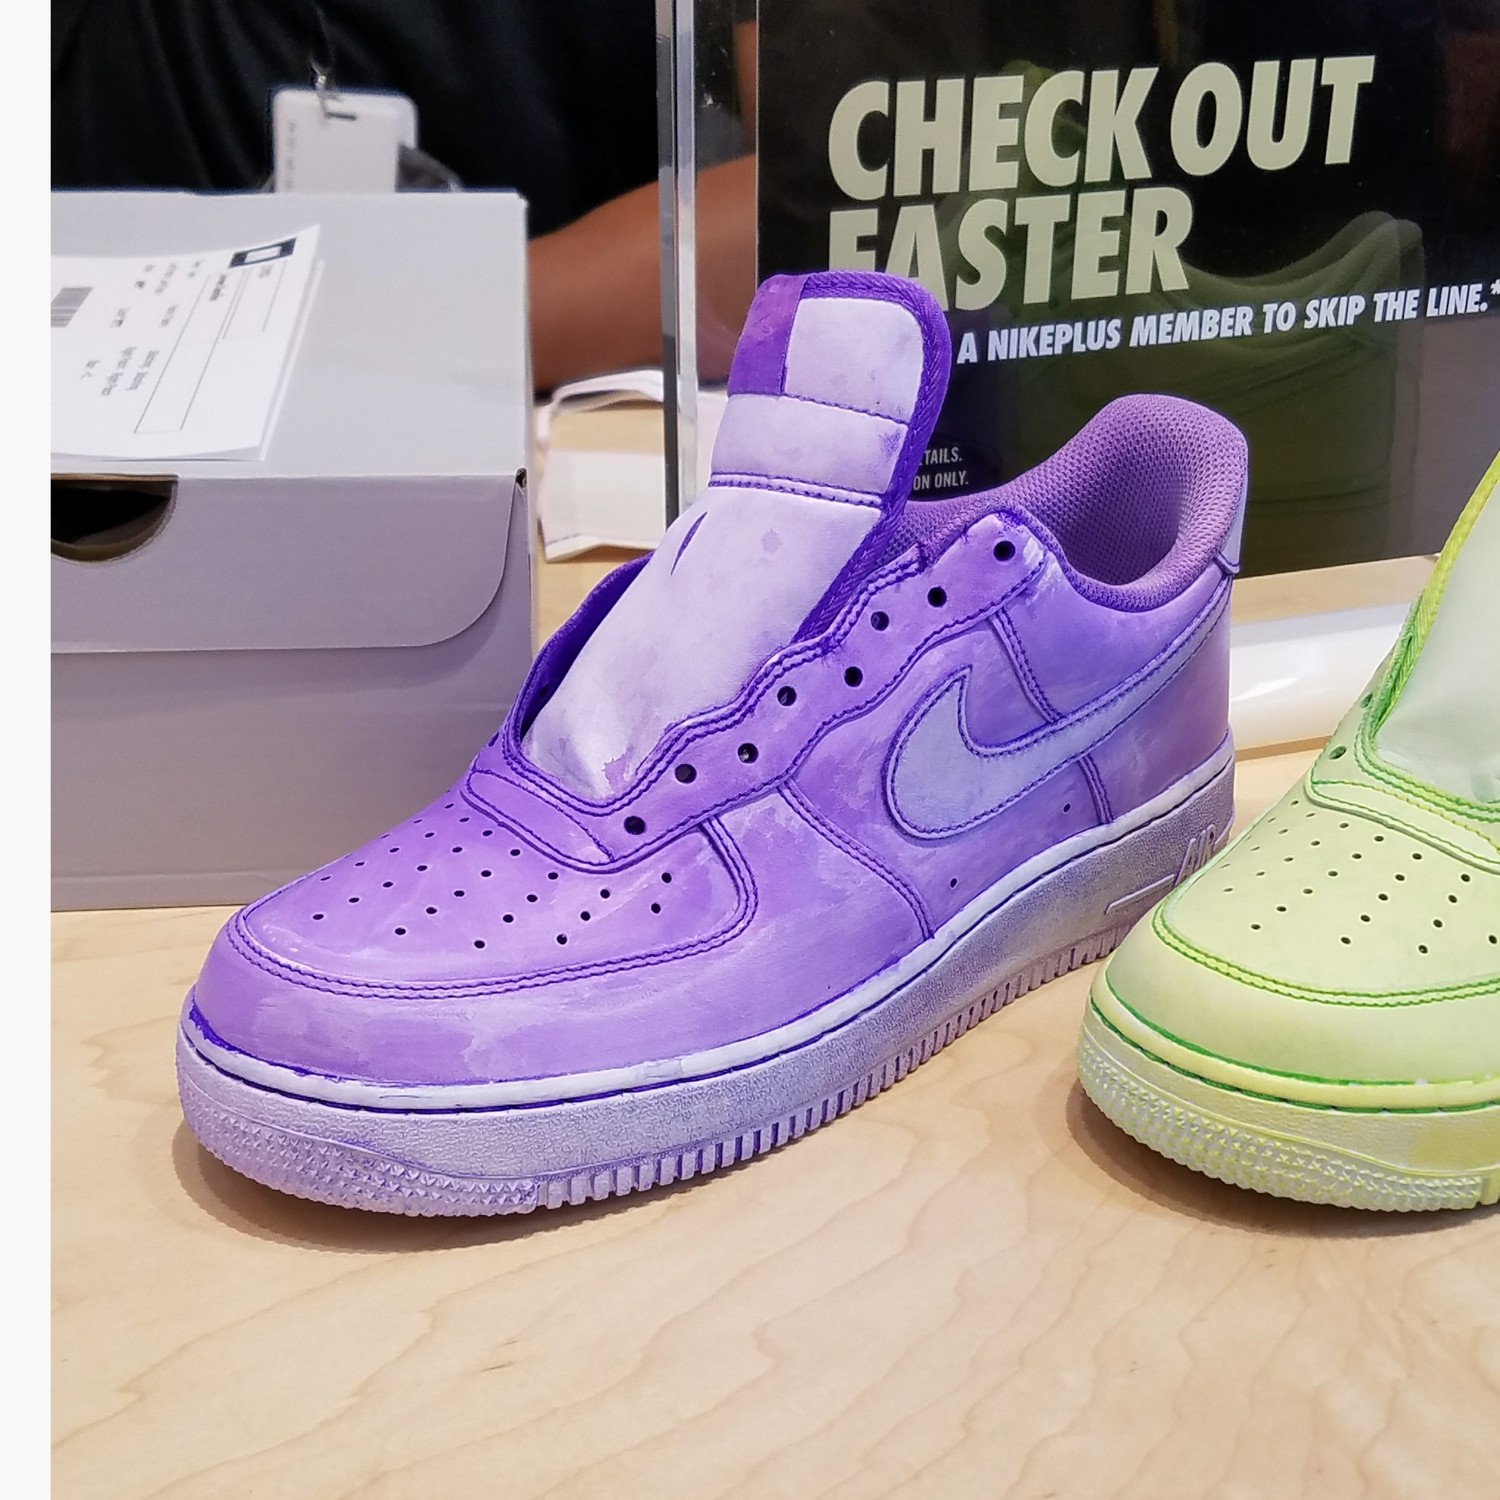 Nikes SoHo Stores Customization Studio For Air Force 1 Shoes And Apparel